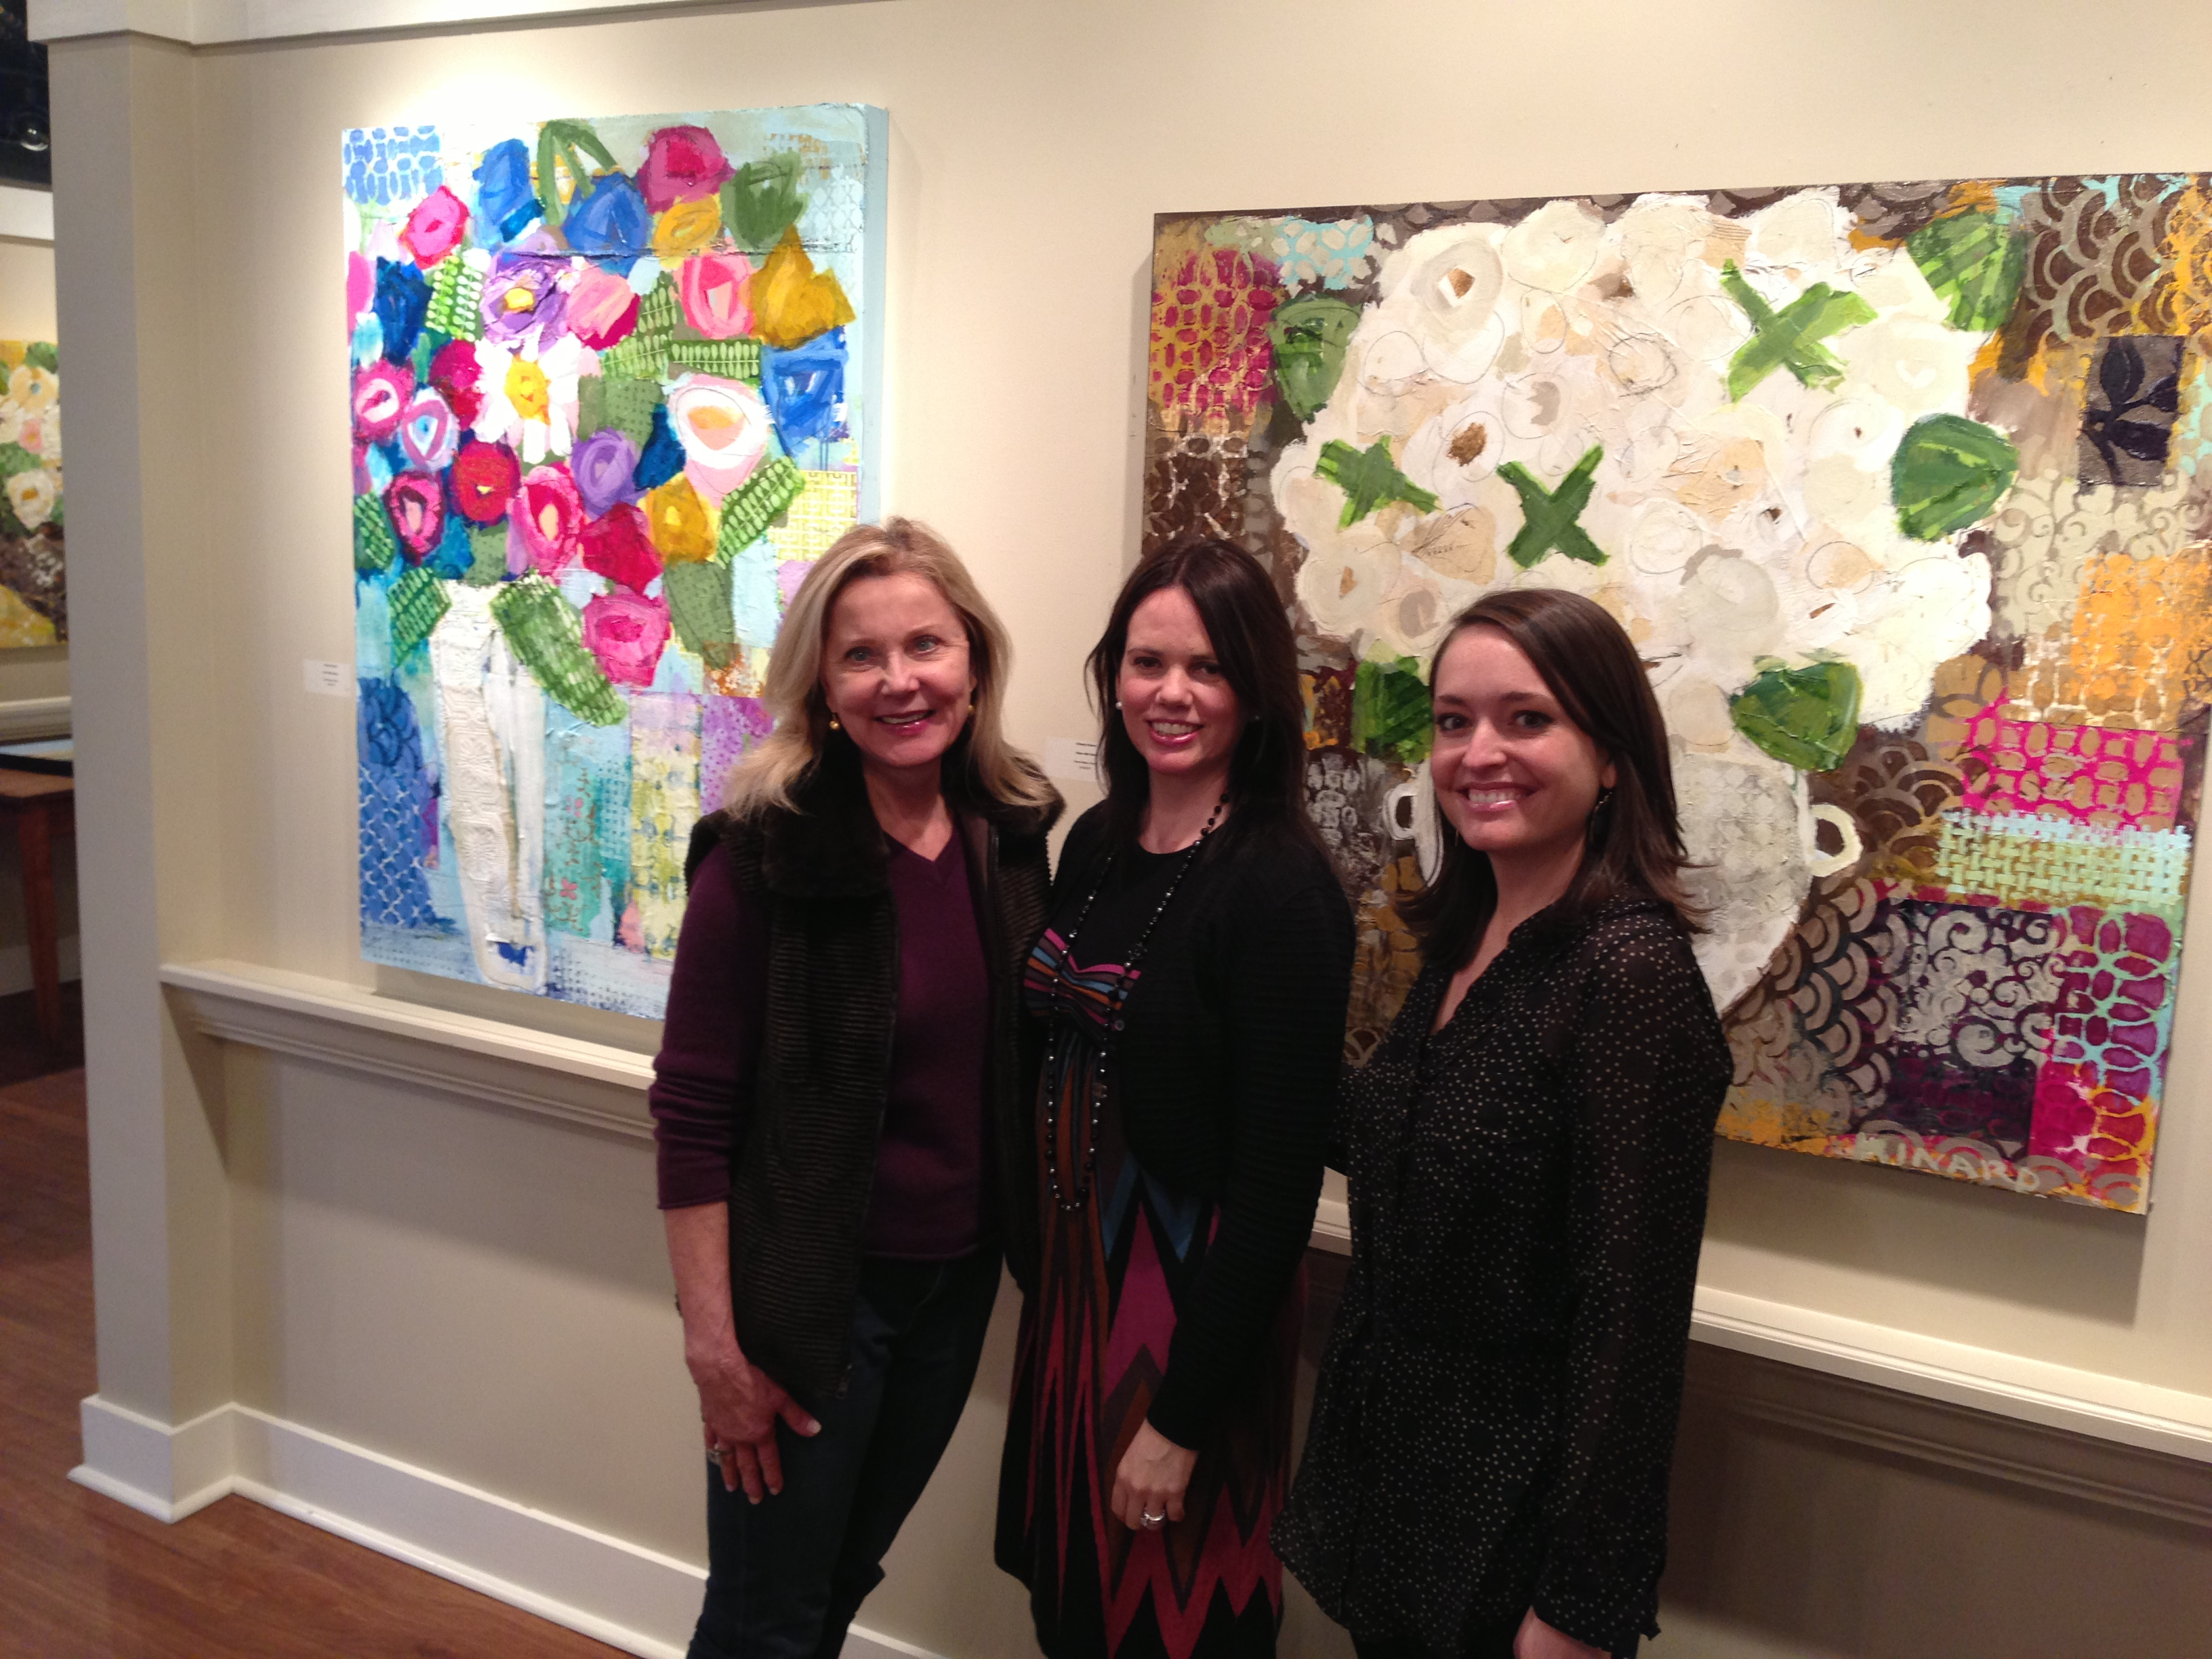 Meet and greet at shain gallery charlotte christy kinard gabby christy and sybil at shain gallery charlotte nc m4hsunfo